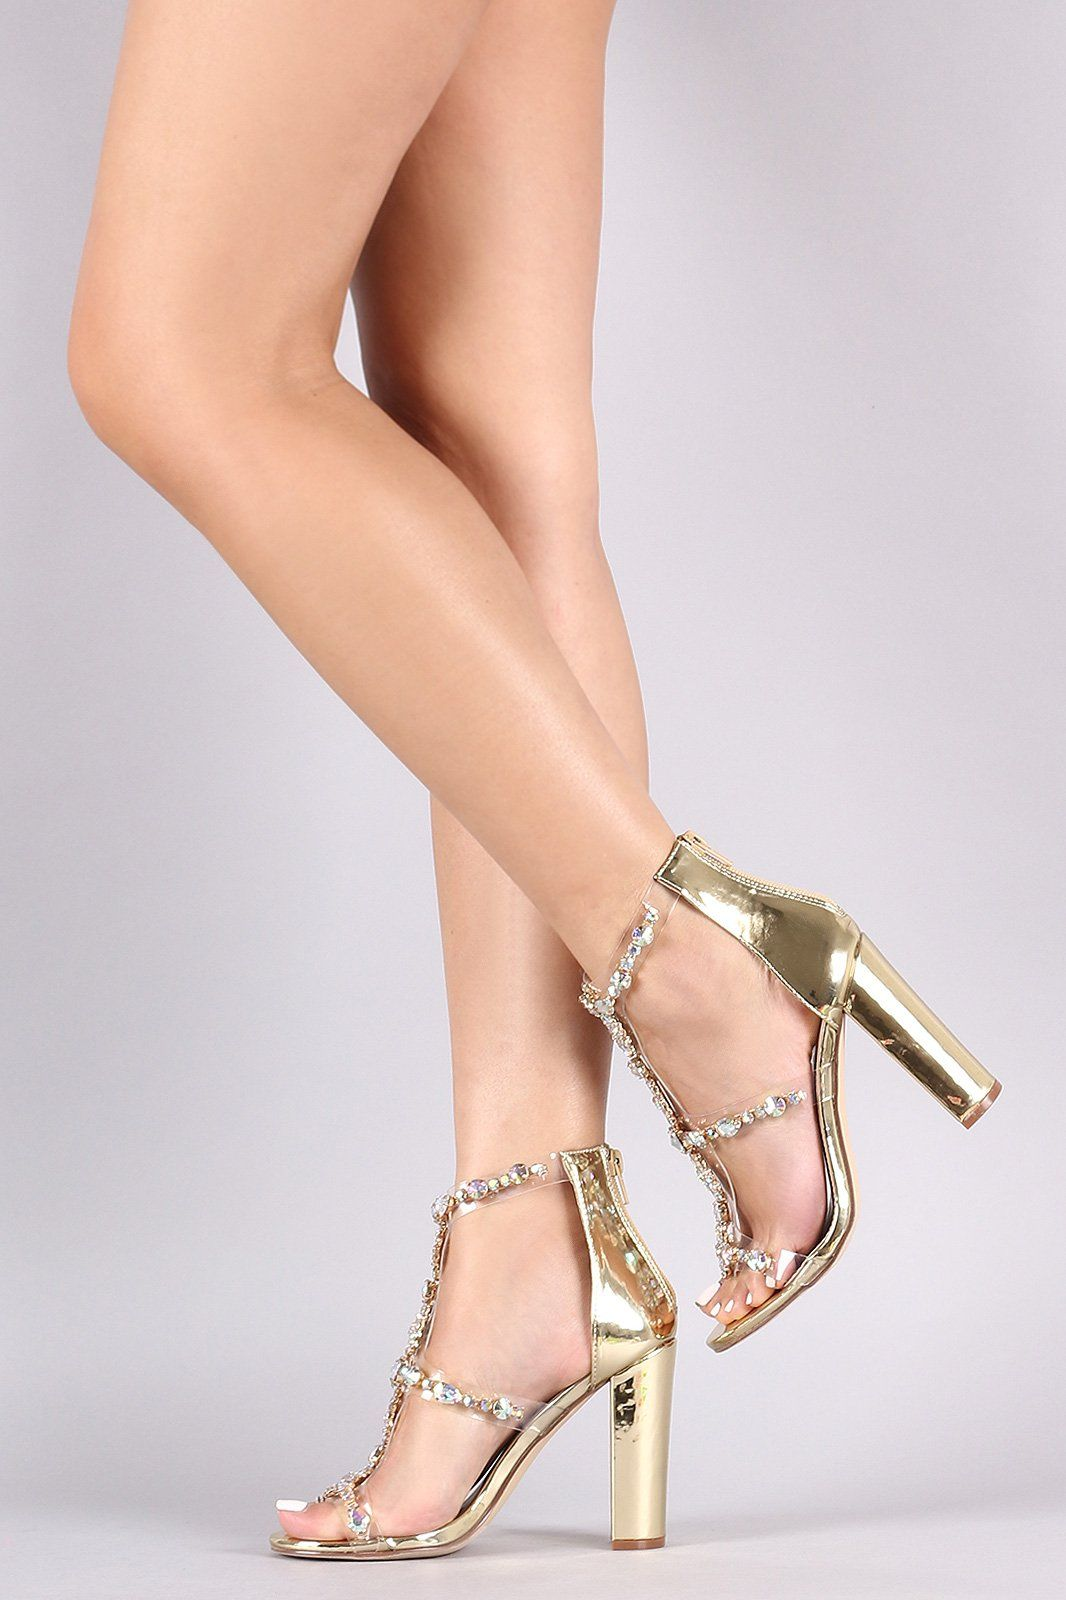 5bd5b865988 Liliana Clear Jewel Embellished T-Strap Stiletto Heel Comes In Mermaid    Unicorn Colors